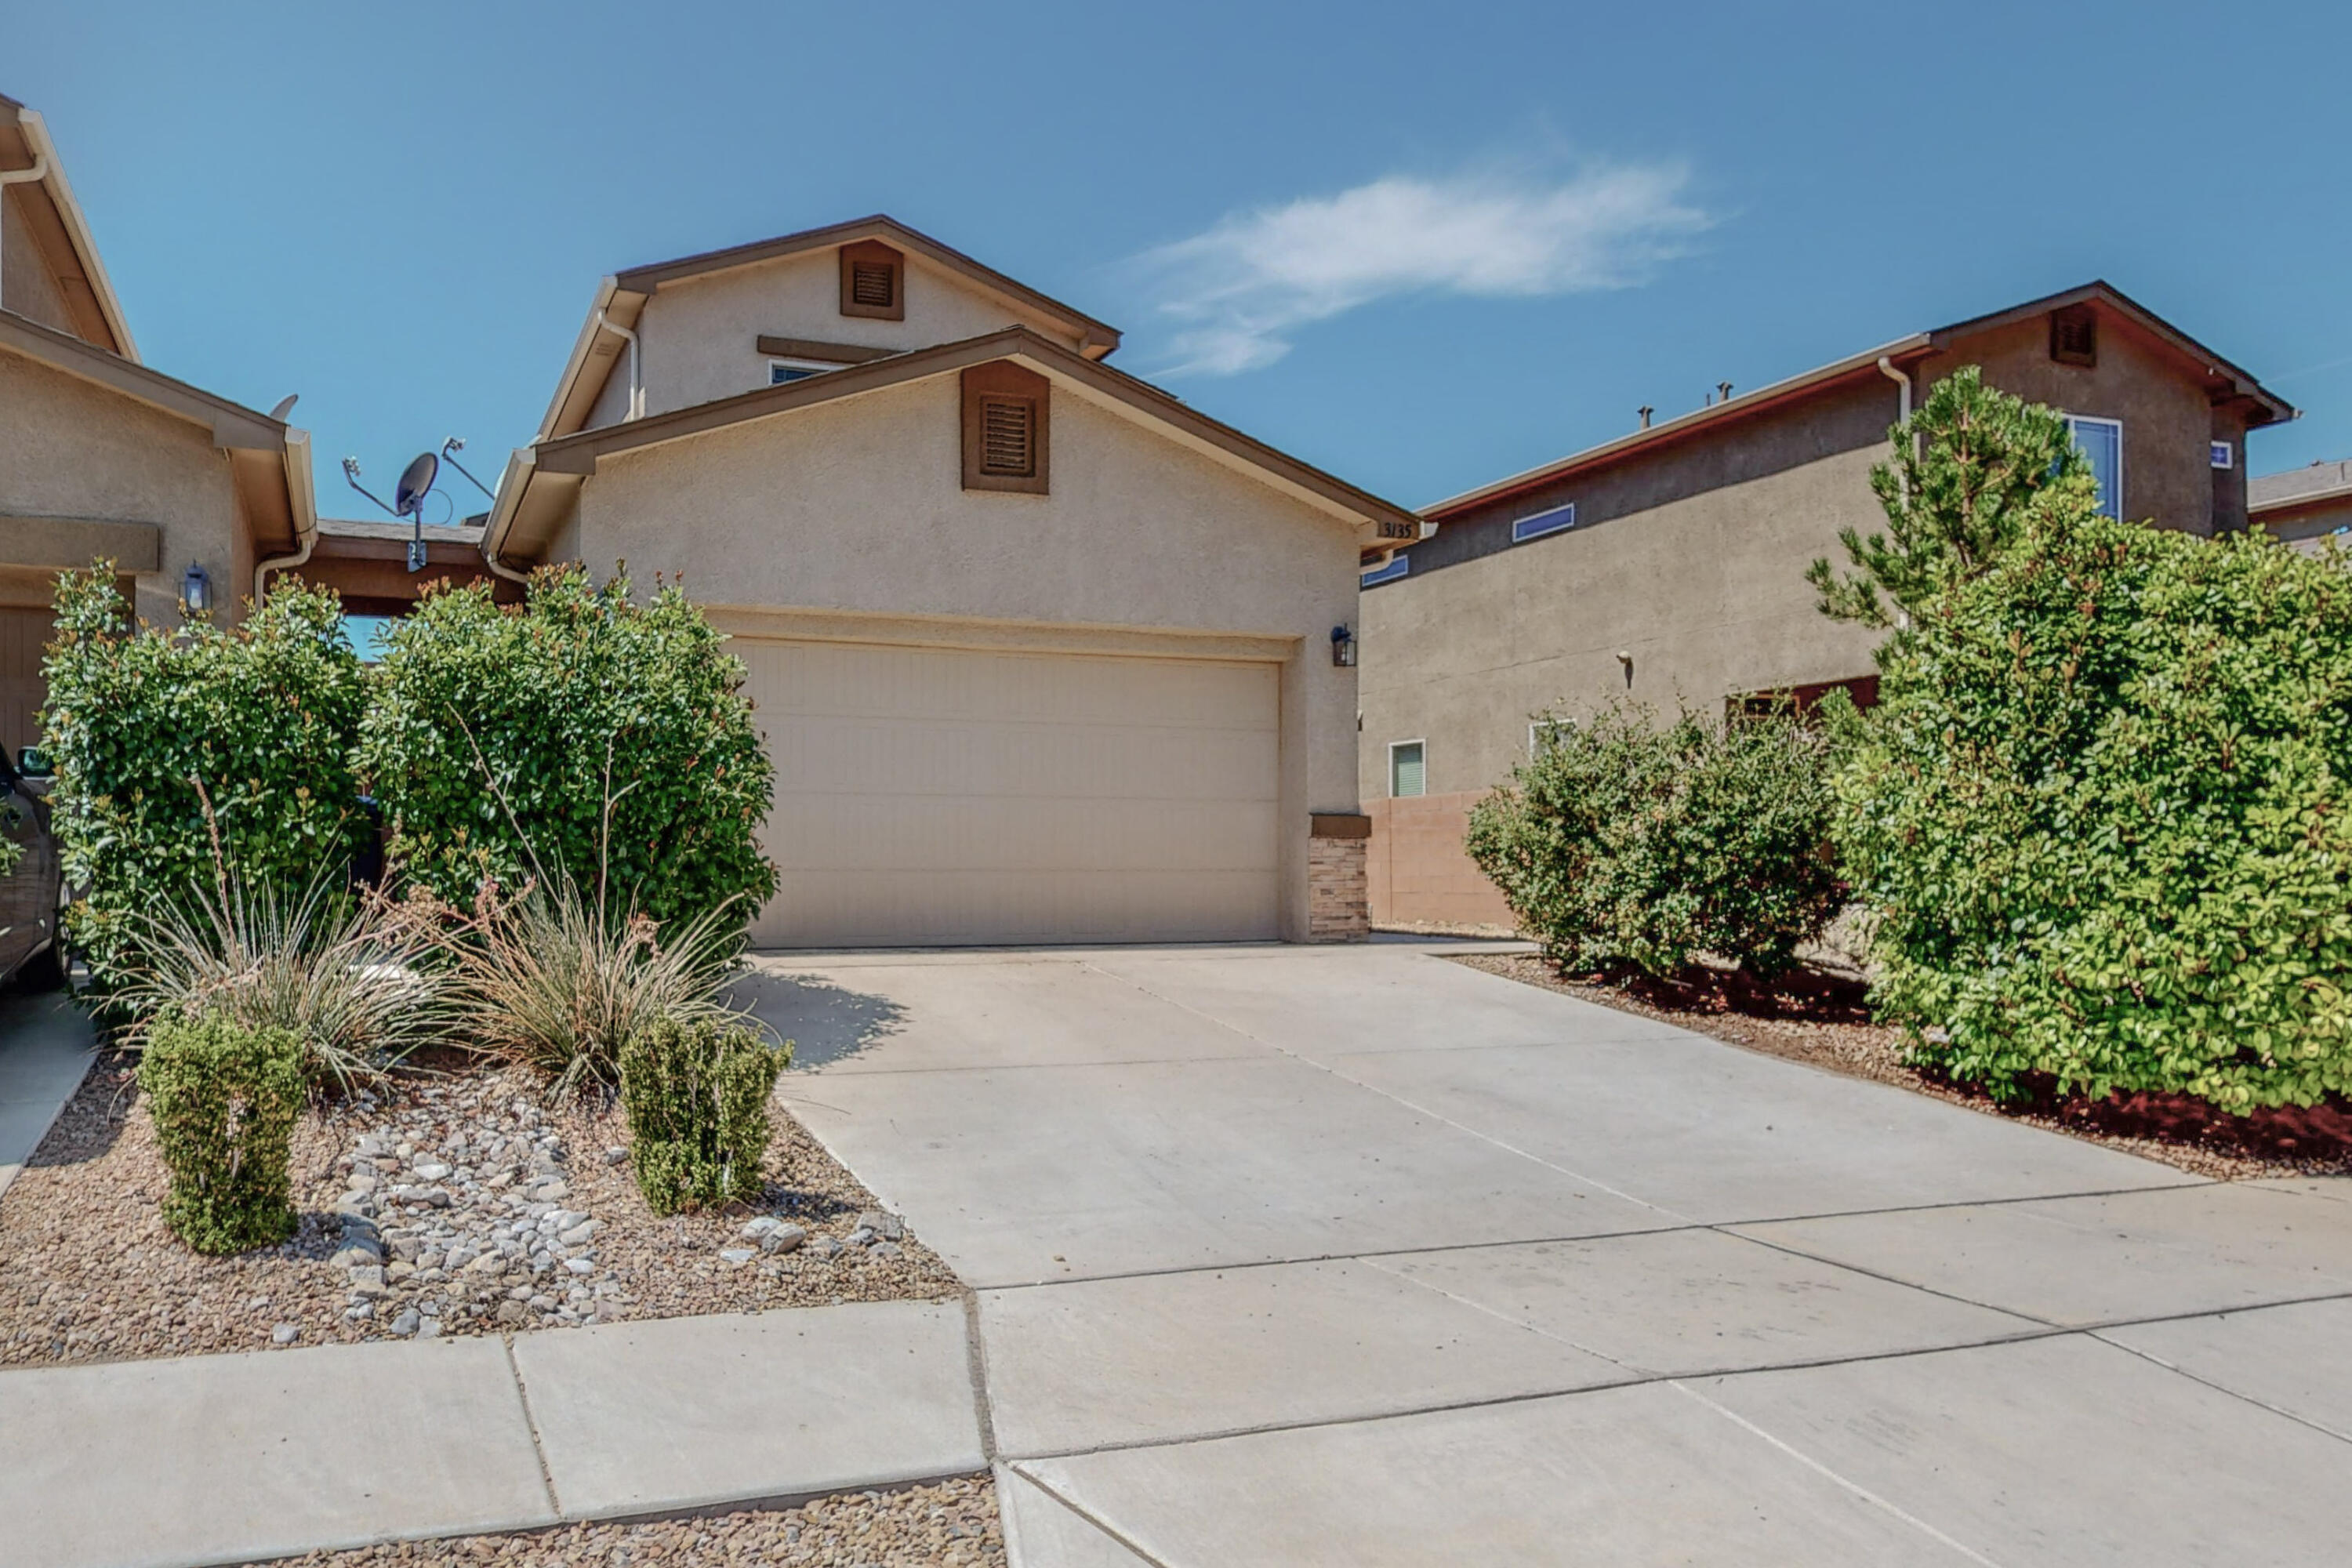 Turn key and ready for new owners.  This home offers 3 bedrooms, 2 baths, 2 car garage, a nice open floor plan, fresh new carpet, refrigerated air conditioning to keep you cool in the summer days, energy efficient tankless water and much more.